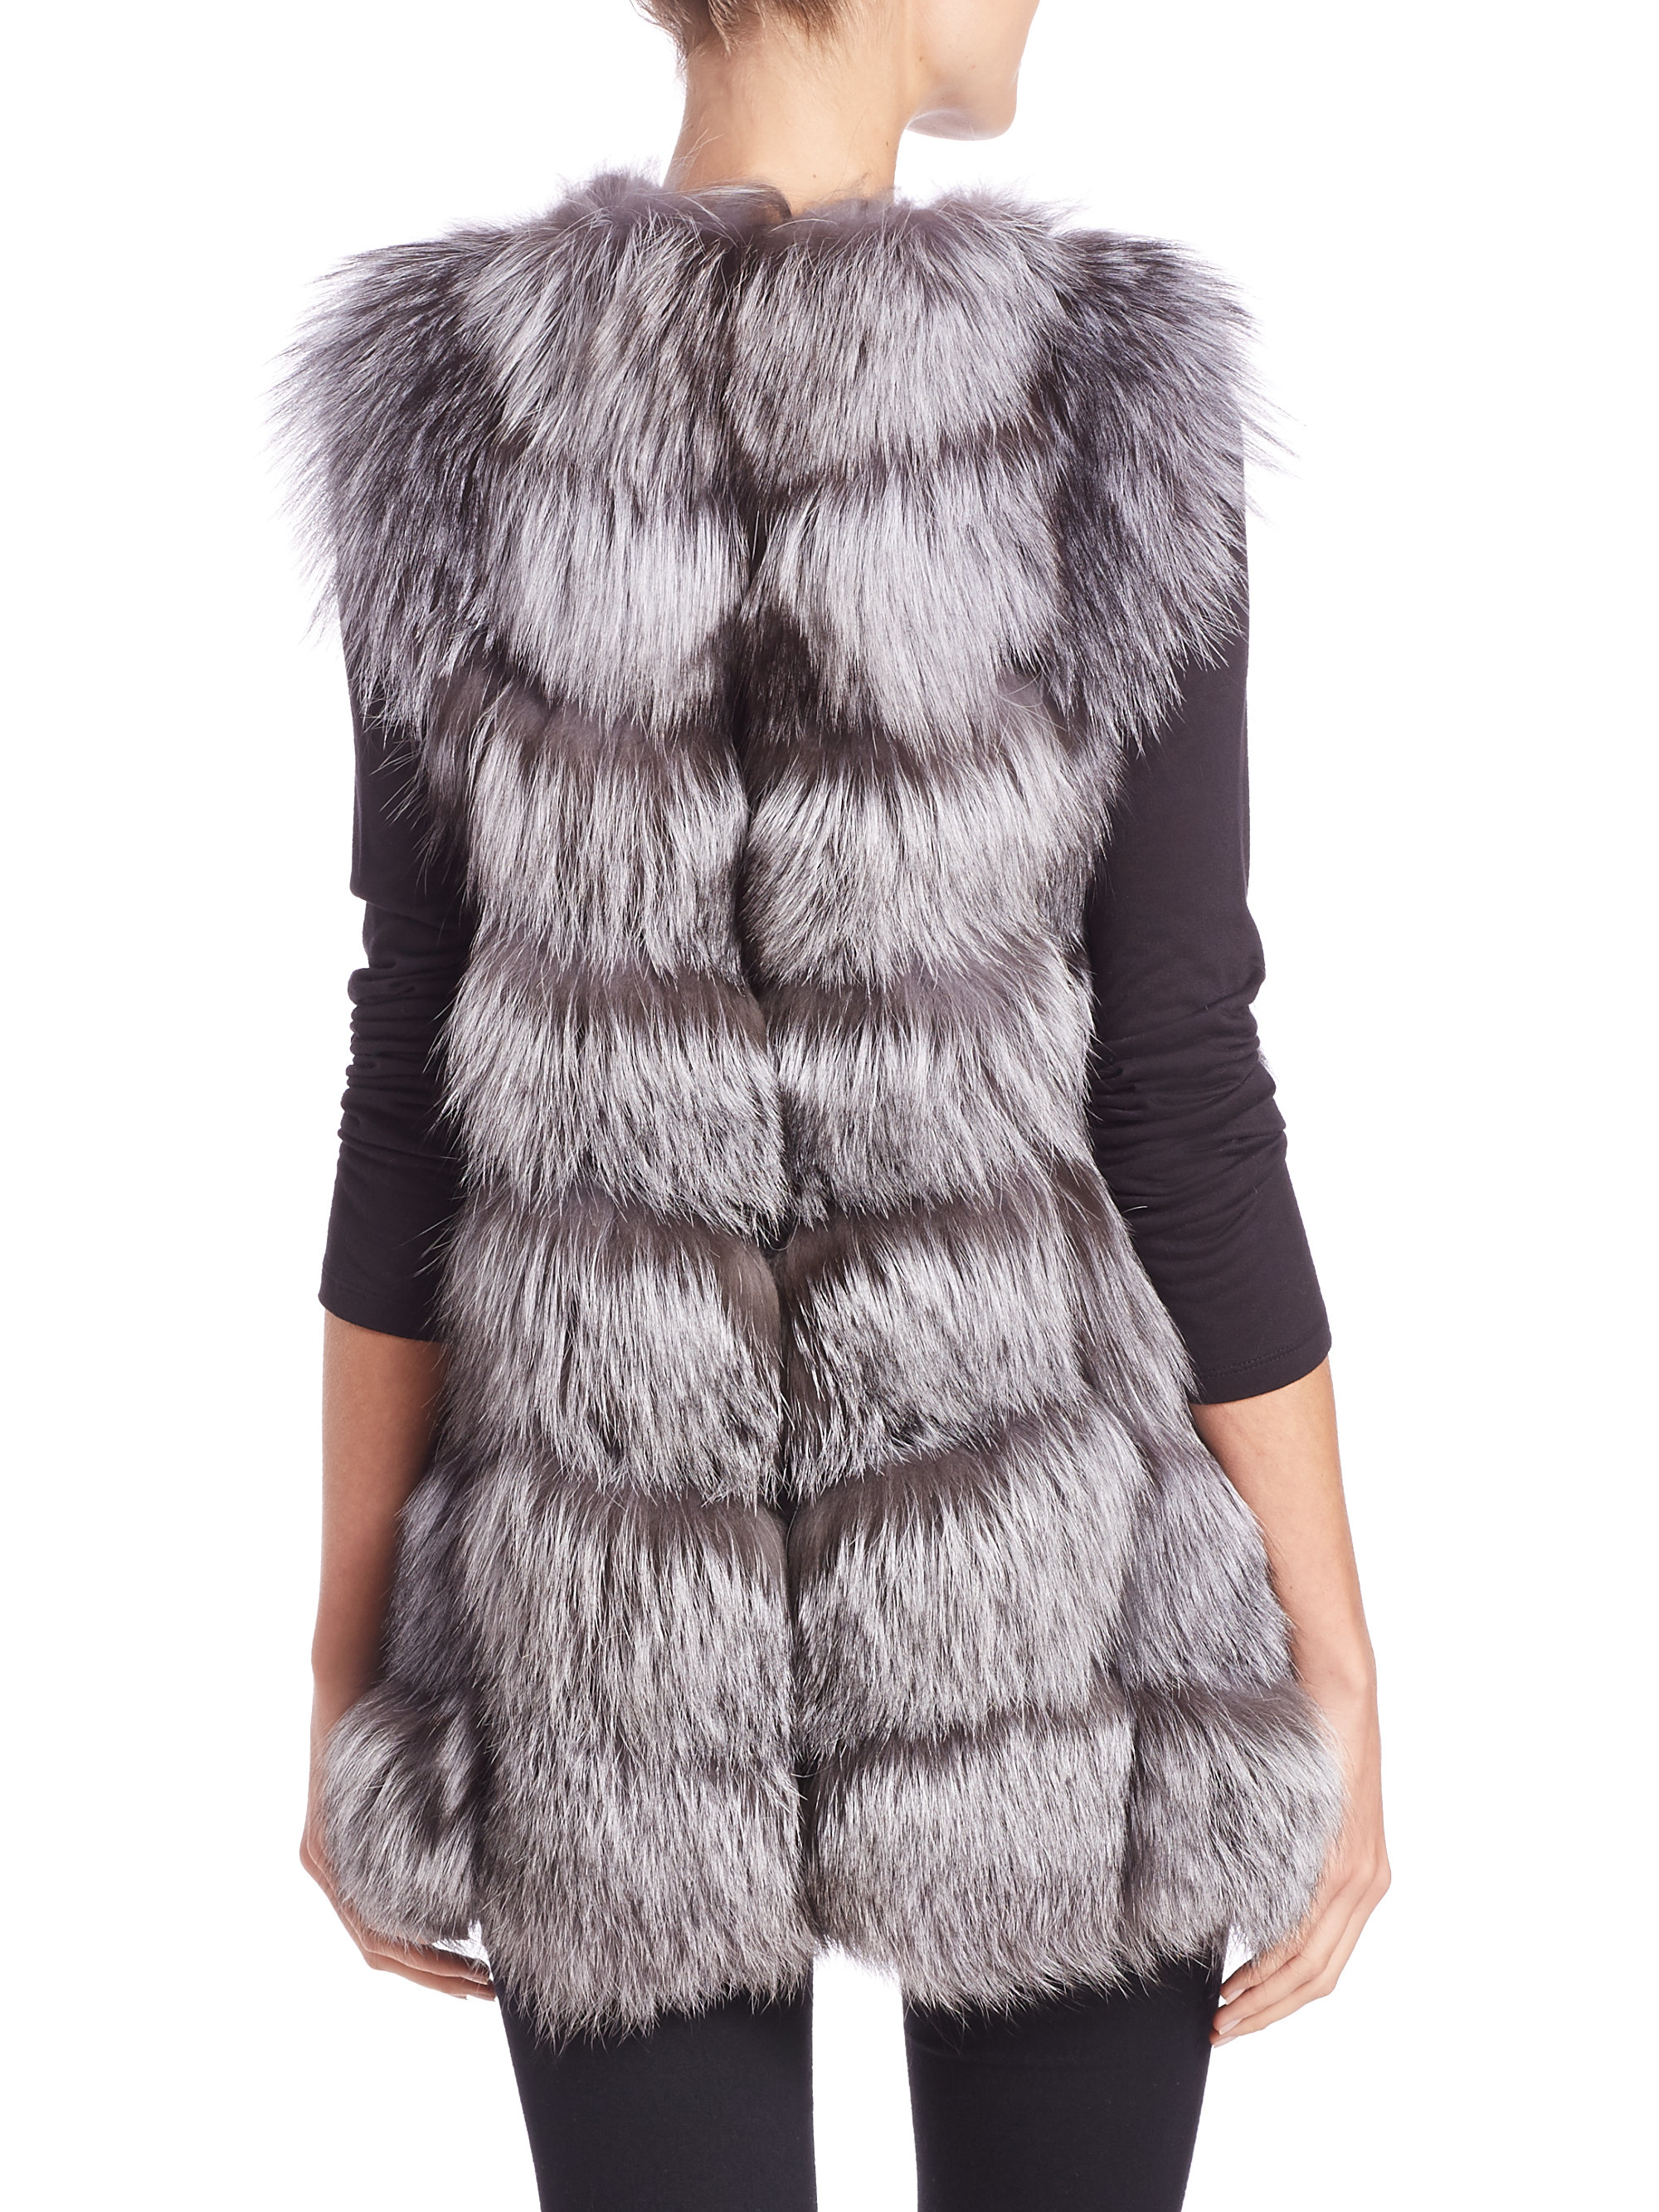 Get Shopping Online High Quality Yves Salomon long mink fur gilet Outlet Cheapest Free Shipping Fake Cheap Sale Visa Payment QIRJDy